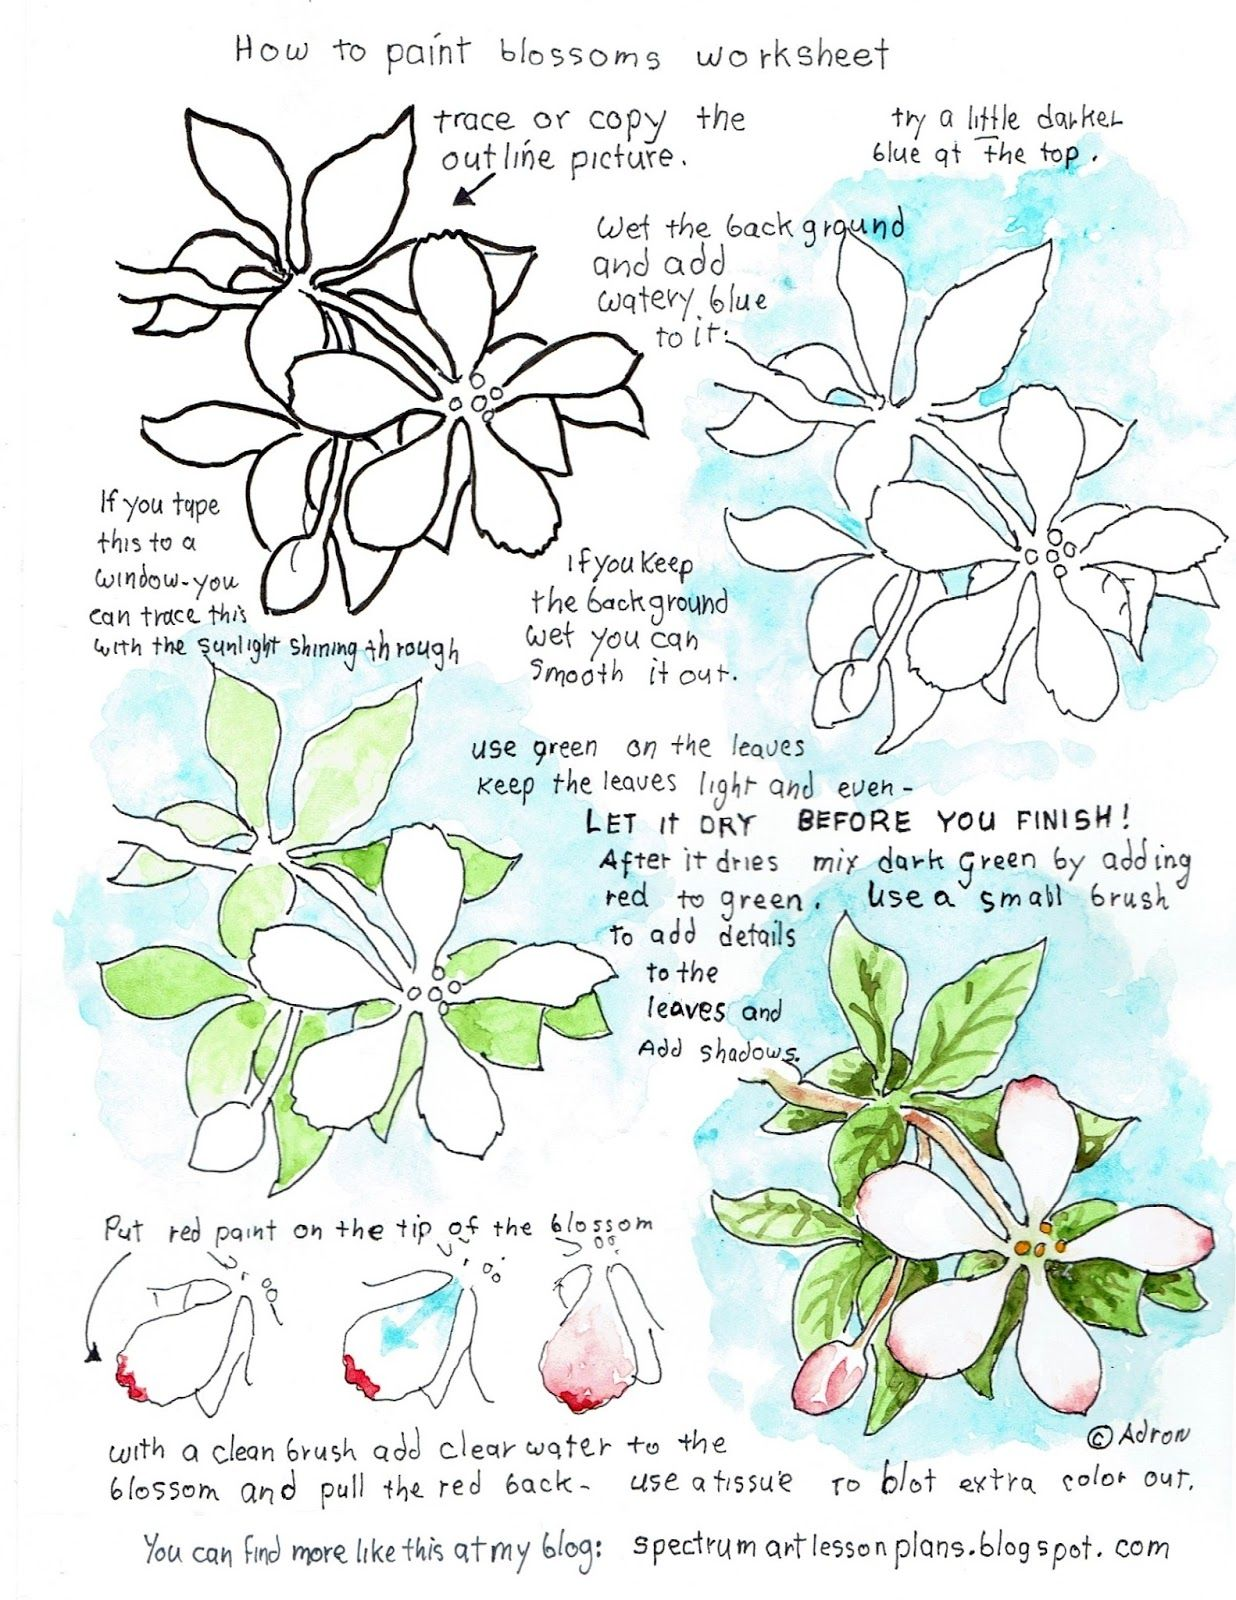 How To Paint Blossoms Easy Watercolor Worksheet For The